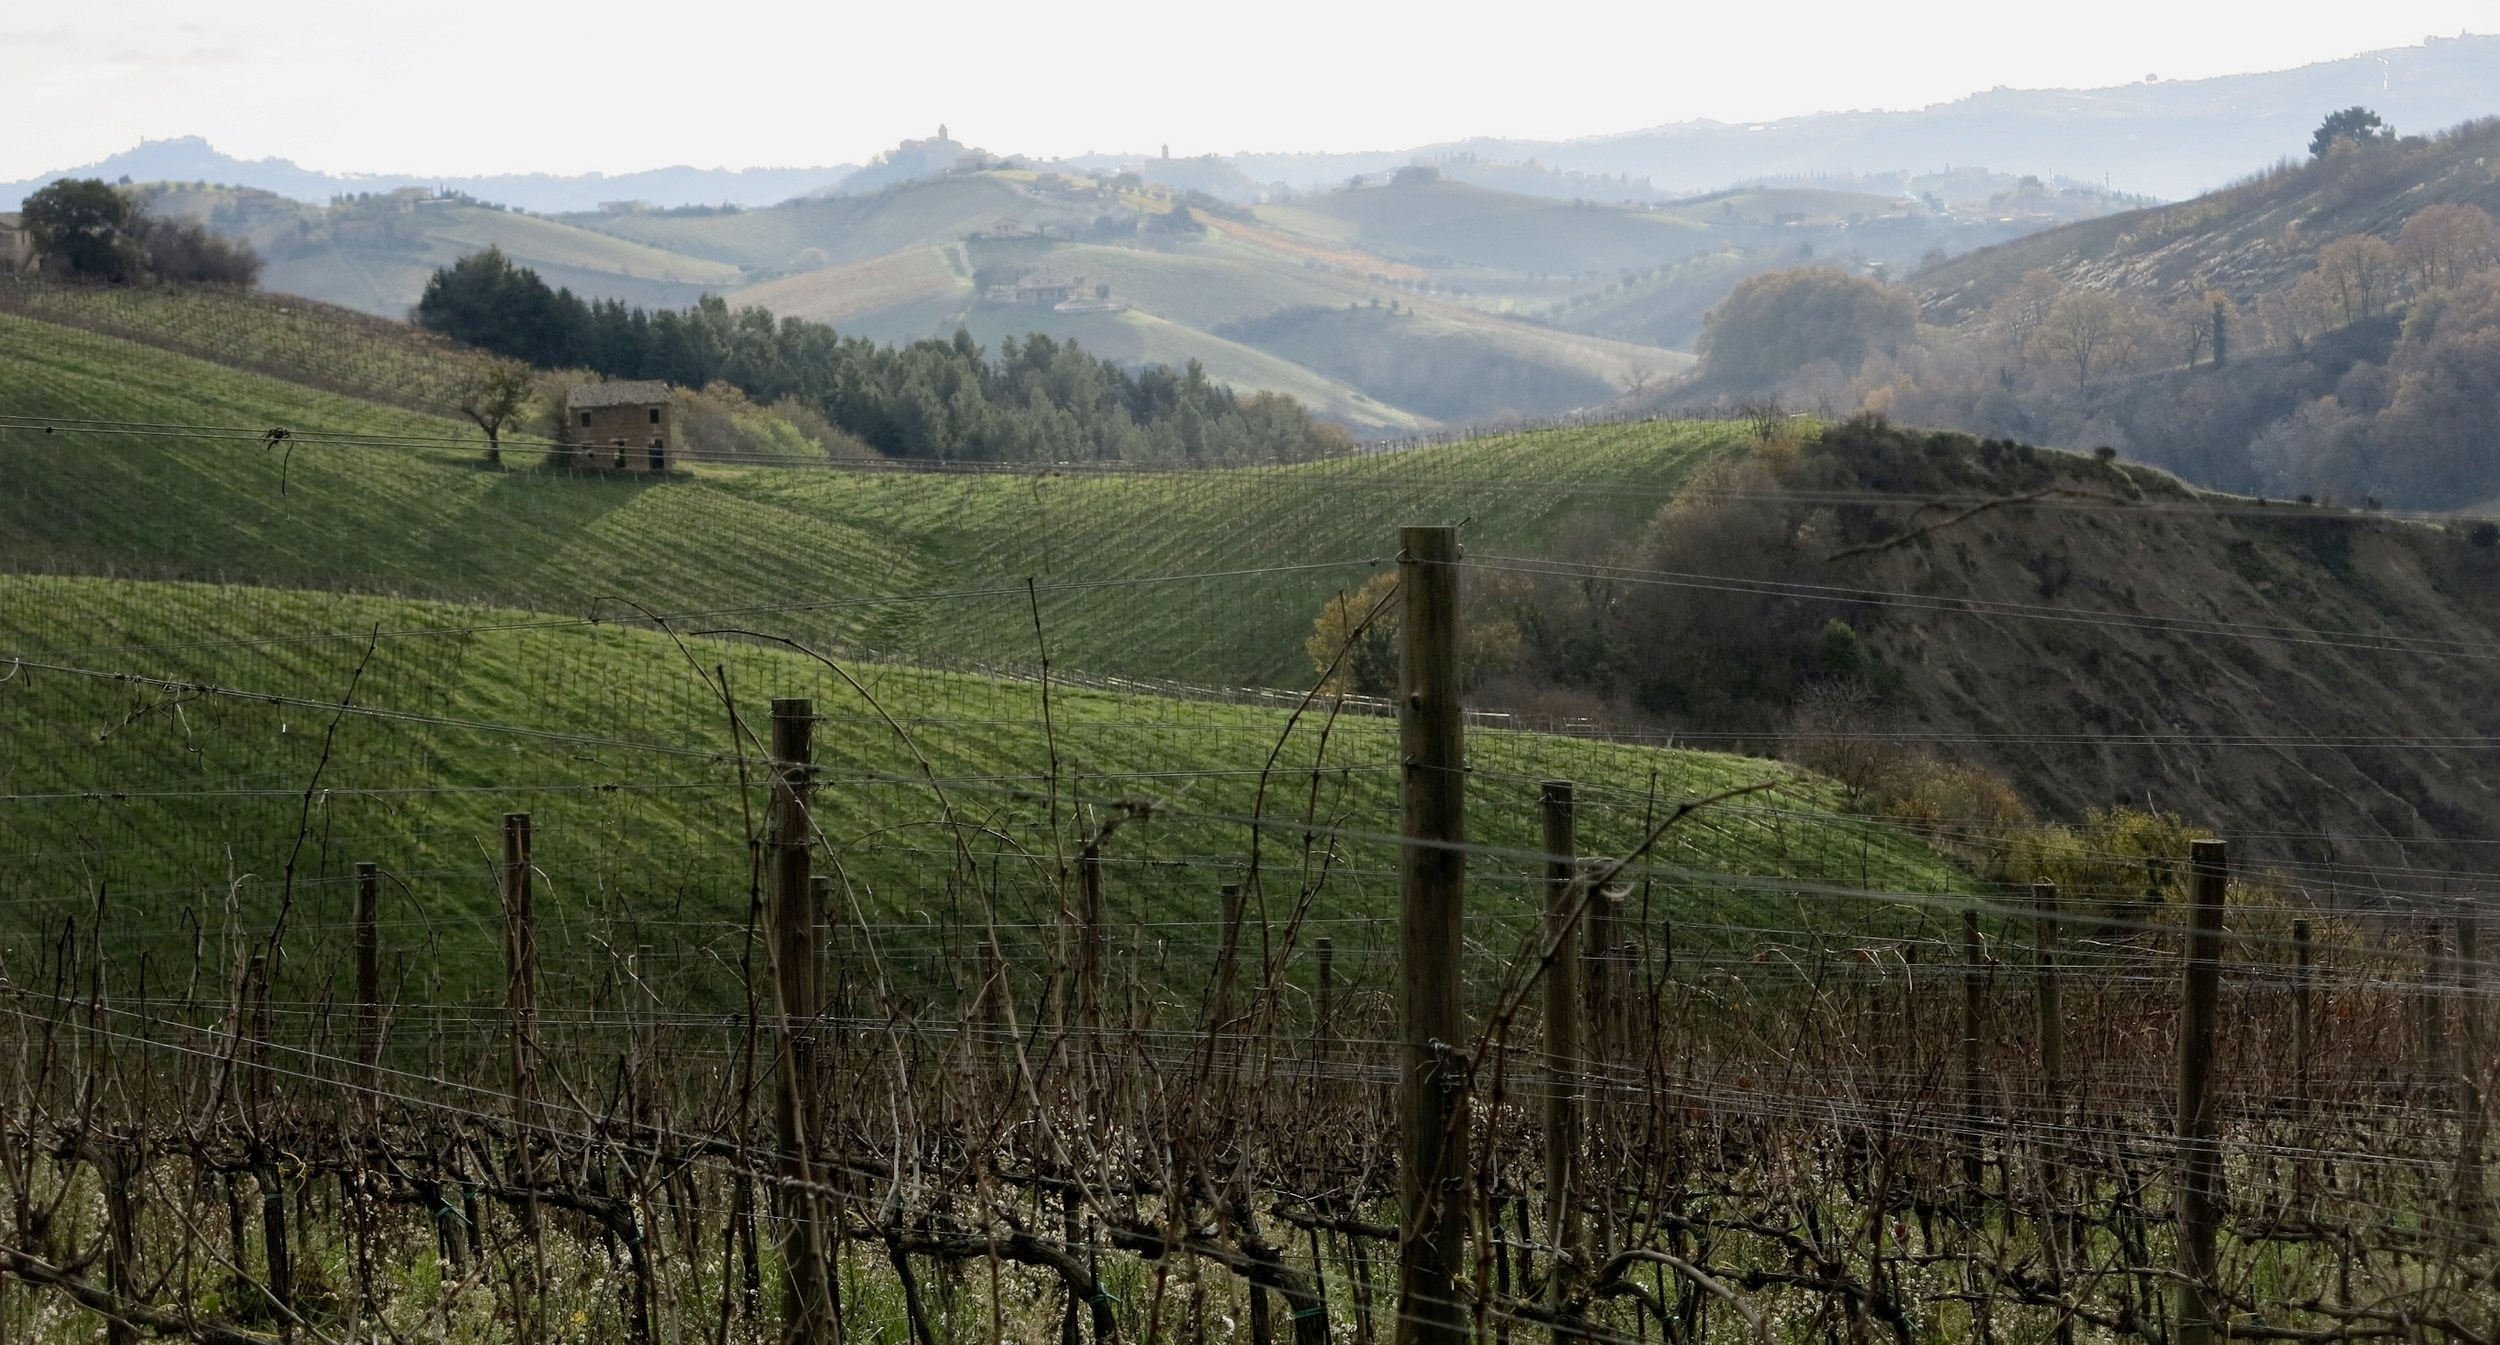 Le Marche winery, Italy